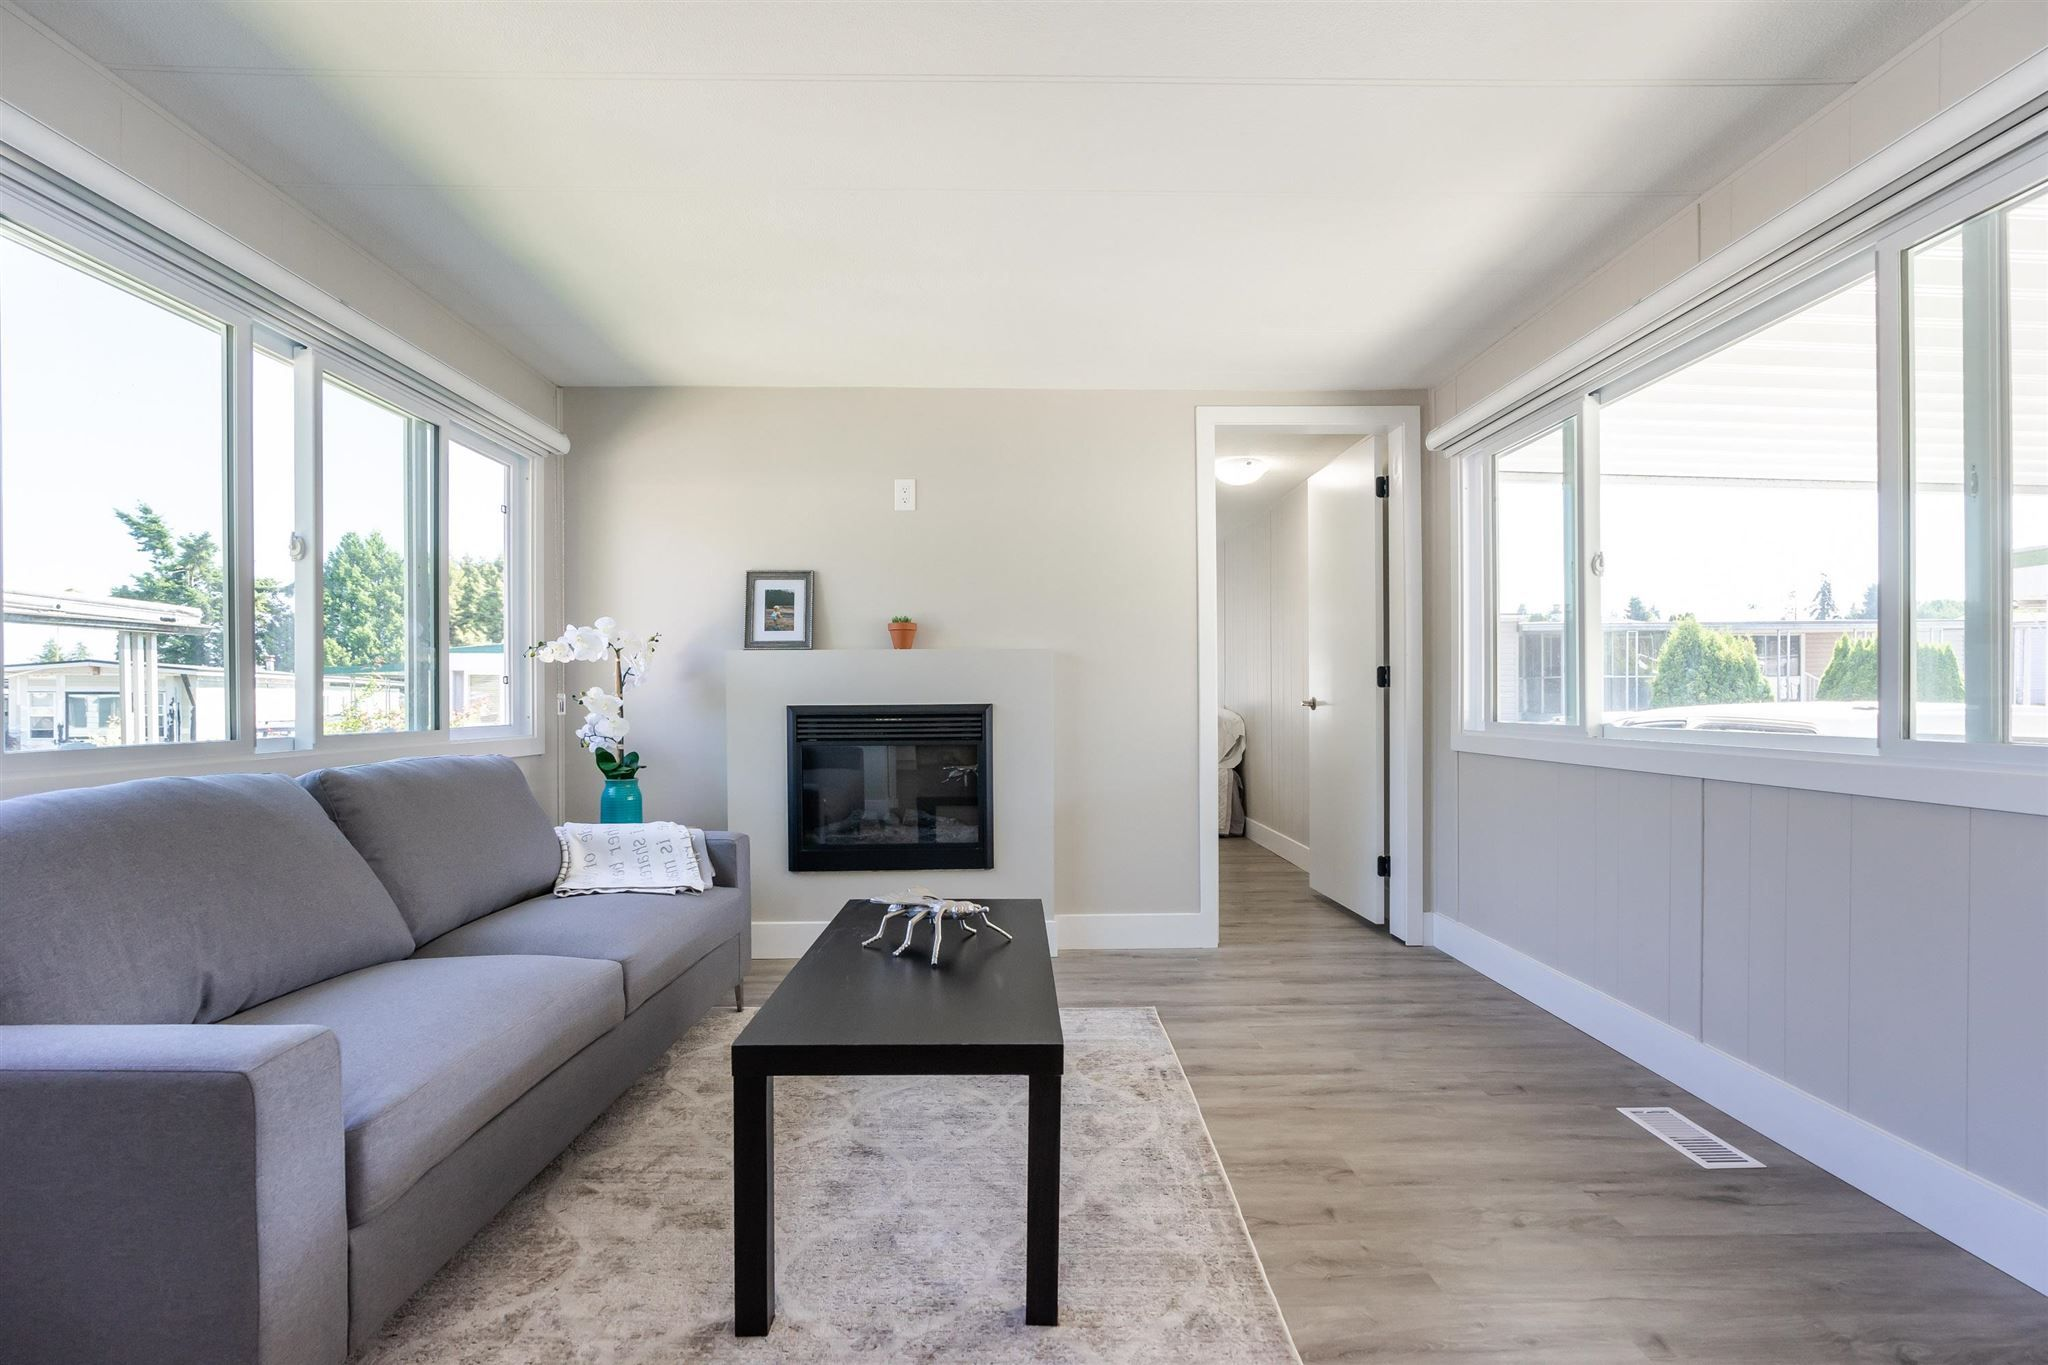 """Main Photo: 119 1840 160 Street in Surrey: King George Corridor Manufactured Home for sale in """"Breakaway Bays"""" (South Surrey White Rock)  : MLS®# R2598312"""